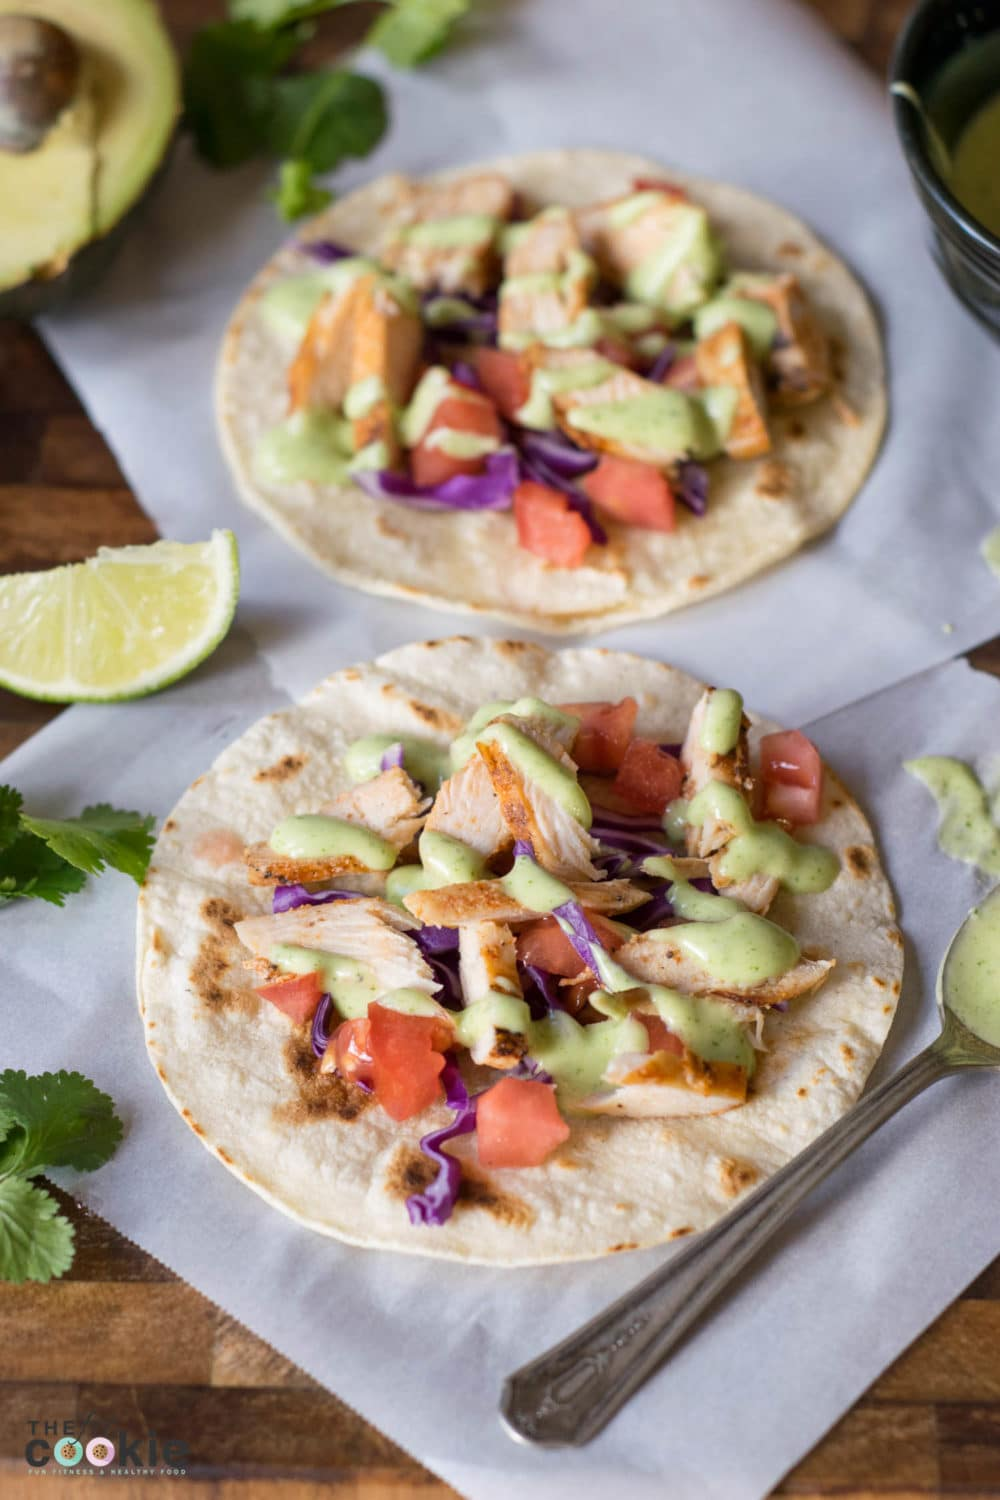 These Grilled Chicken Tacos with Cilantro Crema make a quick, healthy, and allergy-friendly weeknight meal if you use leftover grilled chicken! These are gluten-free, dairy-free, and nut-free, simple, and AMAZING! @TheFitCookie